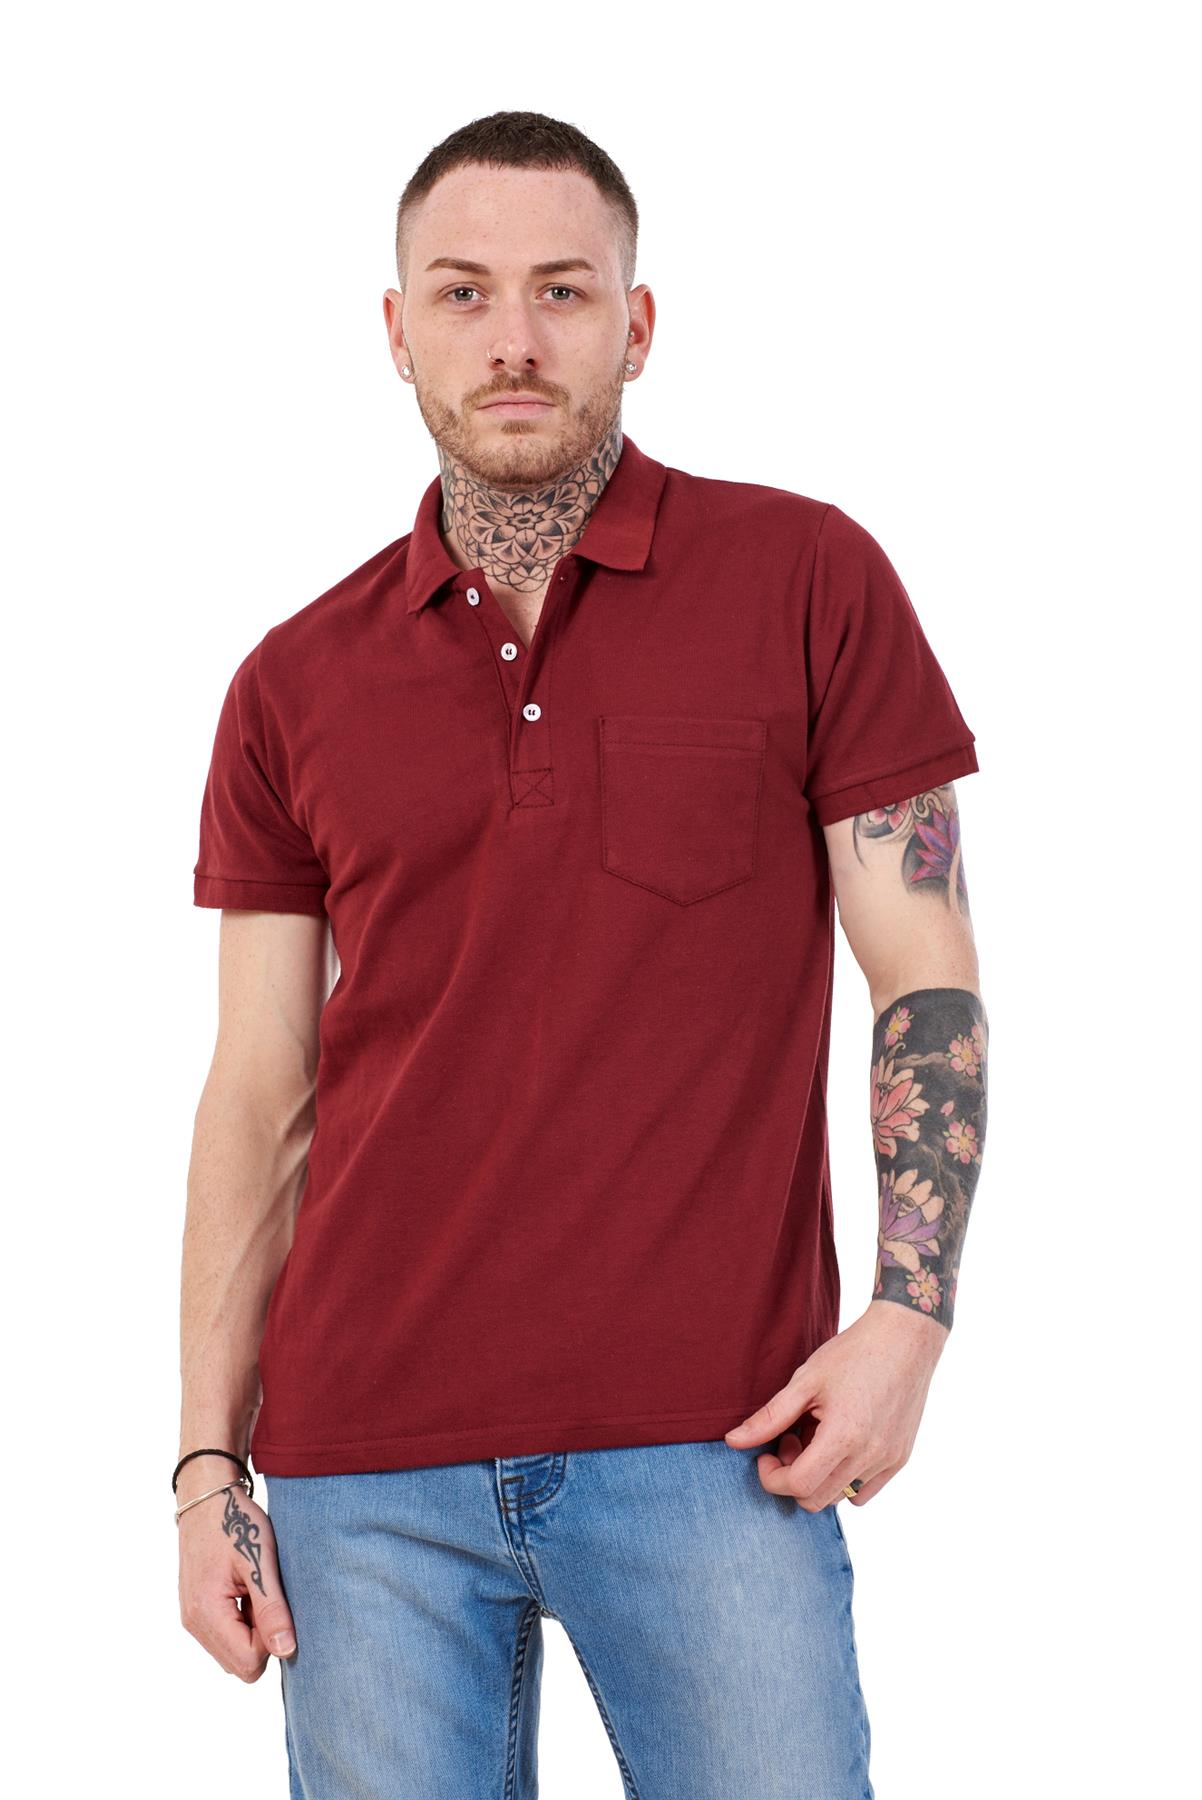 Mens-Cotton-T-Shirts-Regular-fit-Plain-Polo-Pocket-Casual-Formal-Shirt-Top-M-XXL thumbnail 7